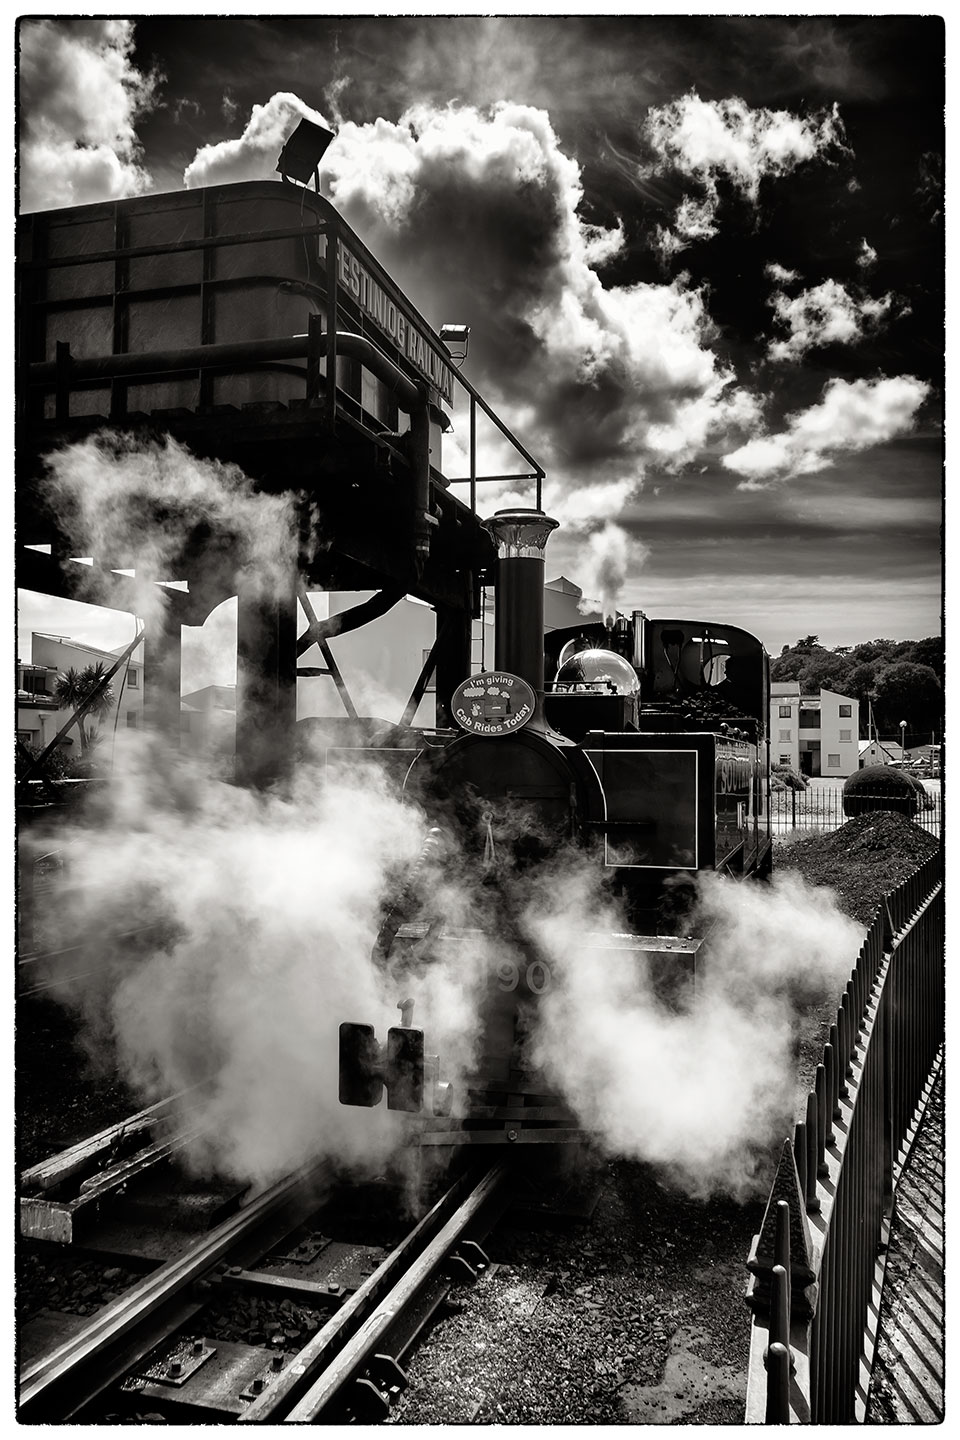 Ready to set off, a mixture of clouds and steam. Ffestiniog railway, Porthmadog.